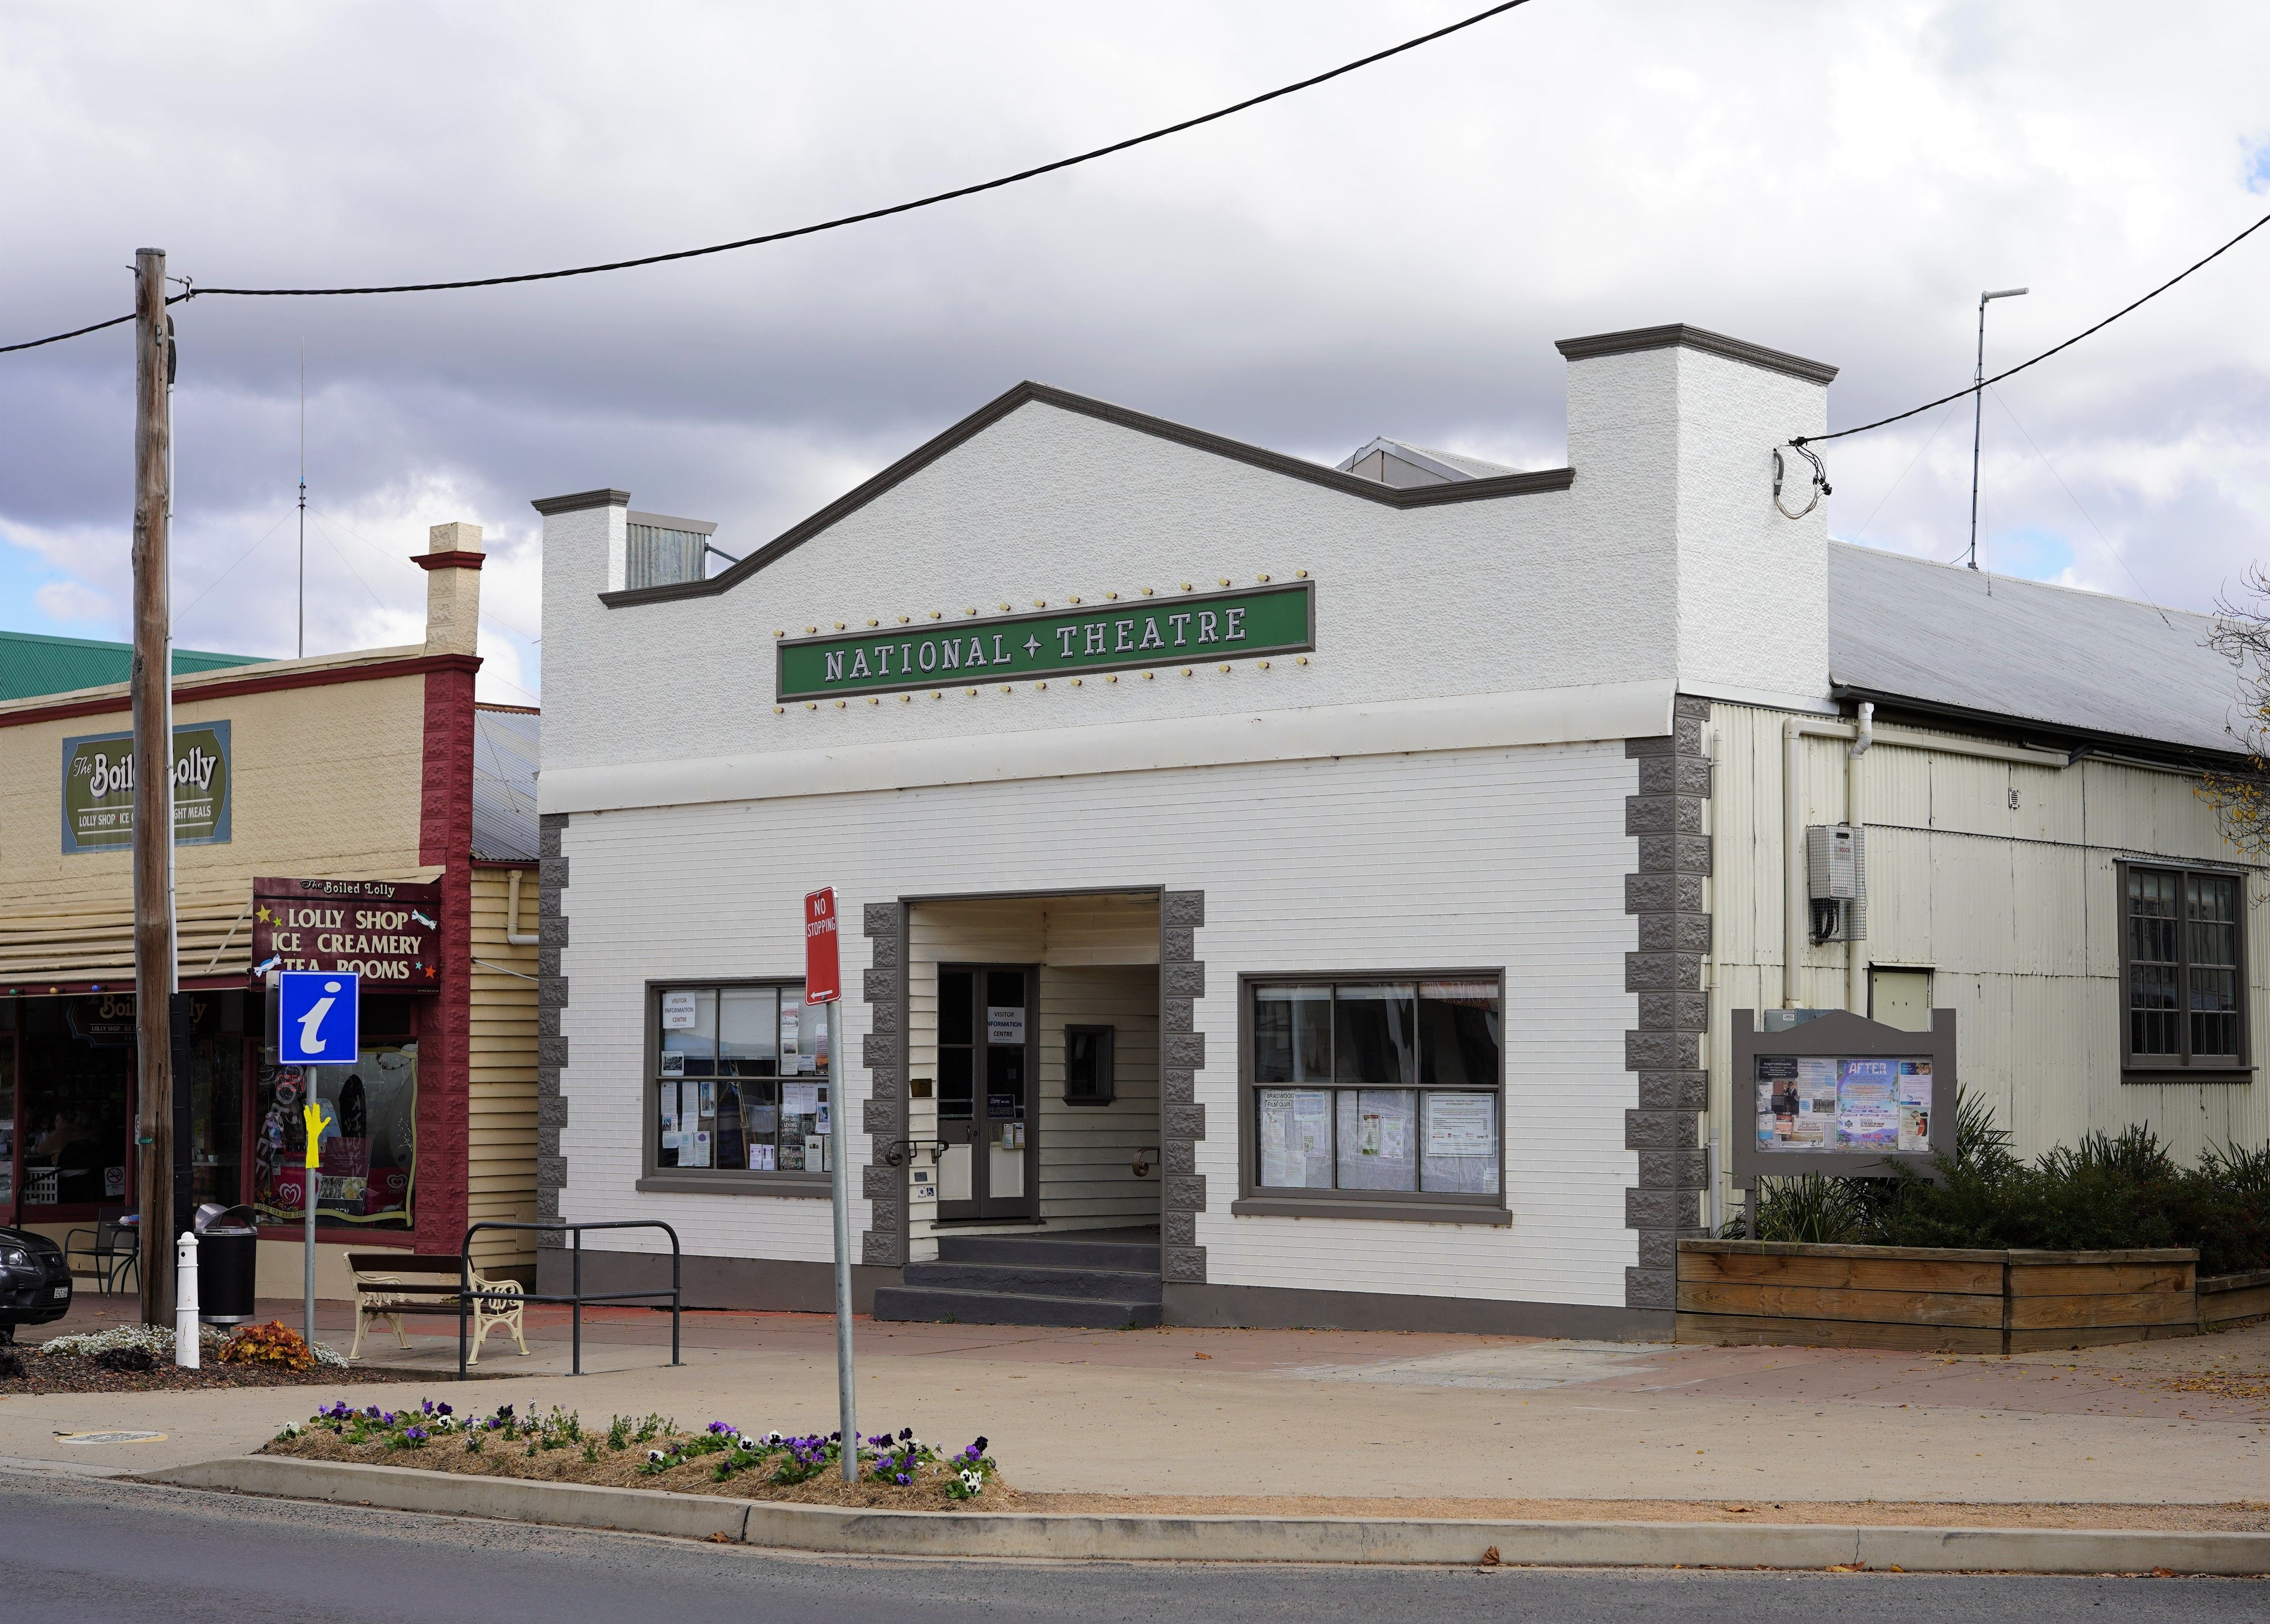 Braidwood Visitors Information Centre at the Theatre